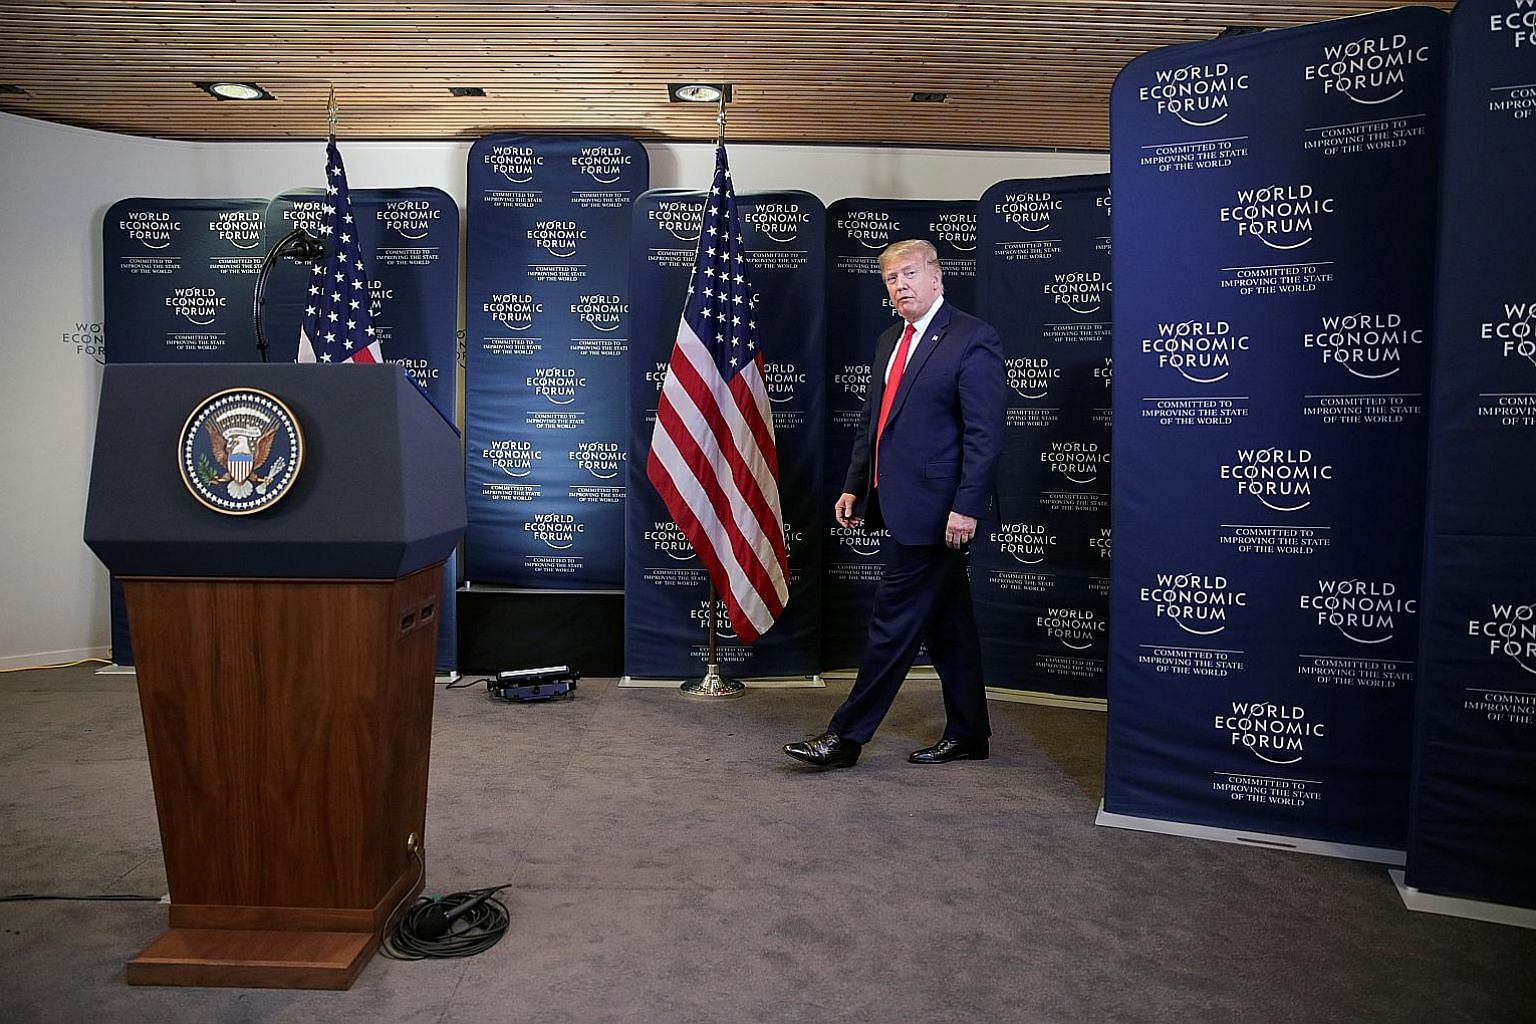 US President Donald Trump arriving at a news conference at the 50th World Economic Forum in Davos, Switzerland, yesterday. On Tuesday night, Democrats and Republicans in the US Senate wrangled long and hard over whether documents and witnesses should